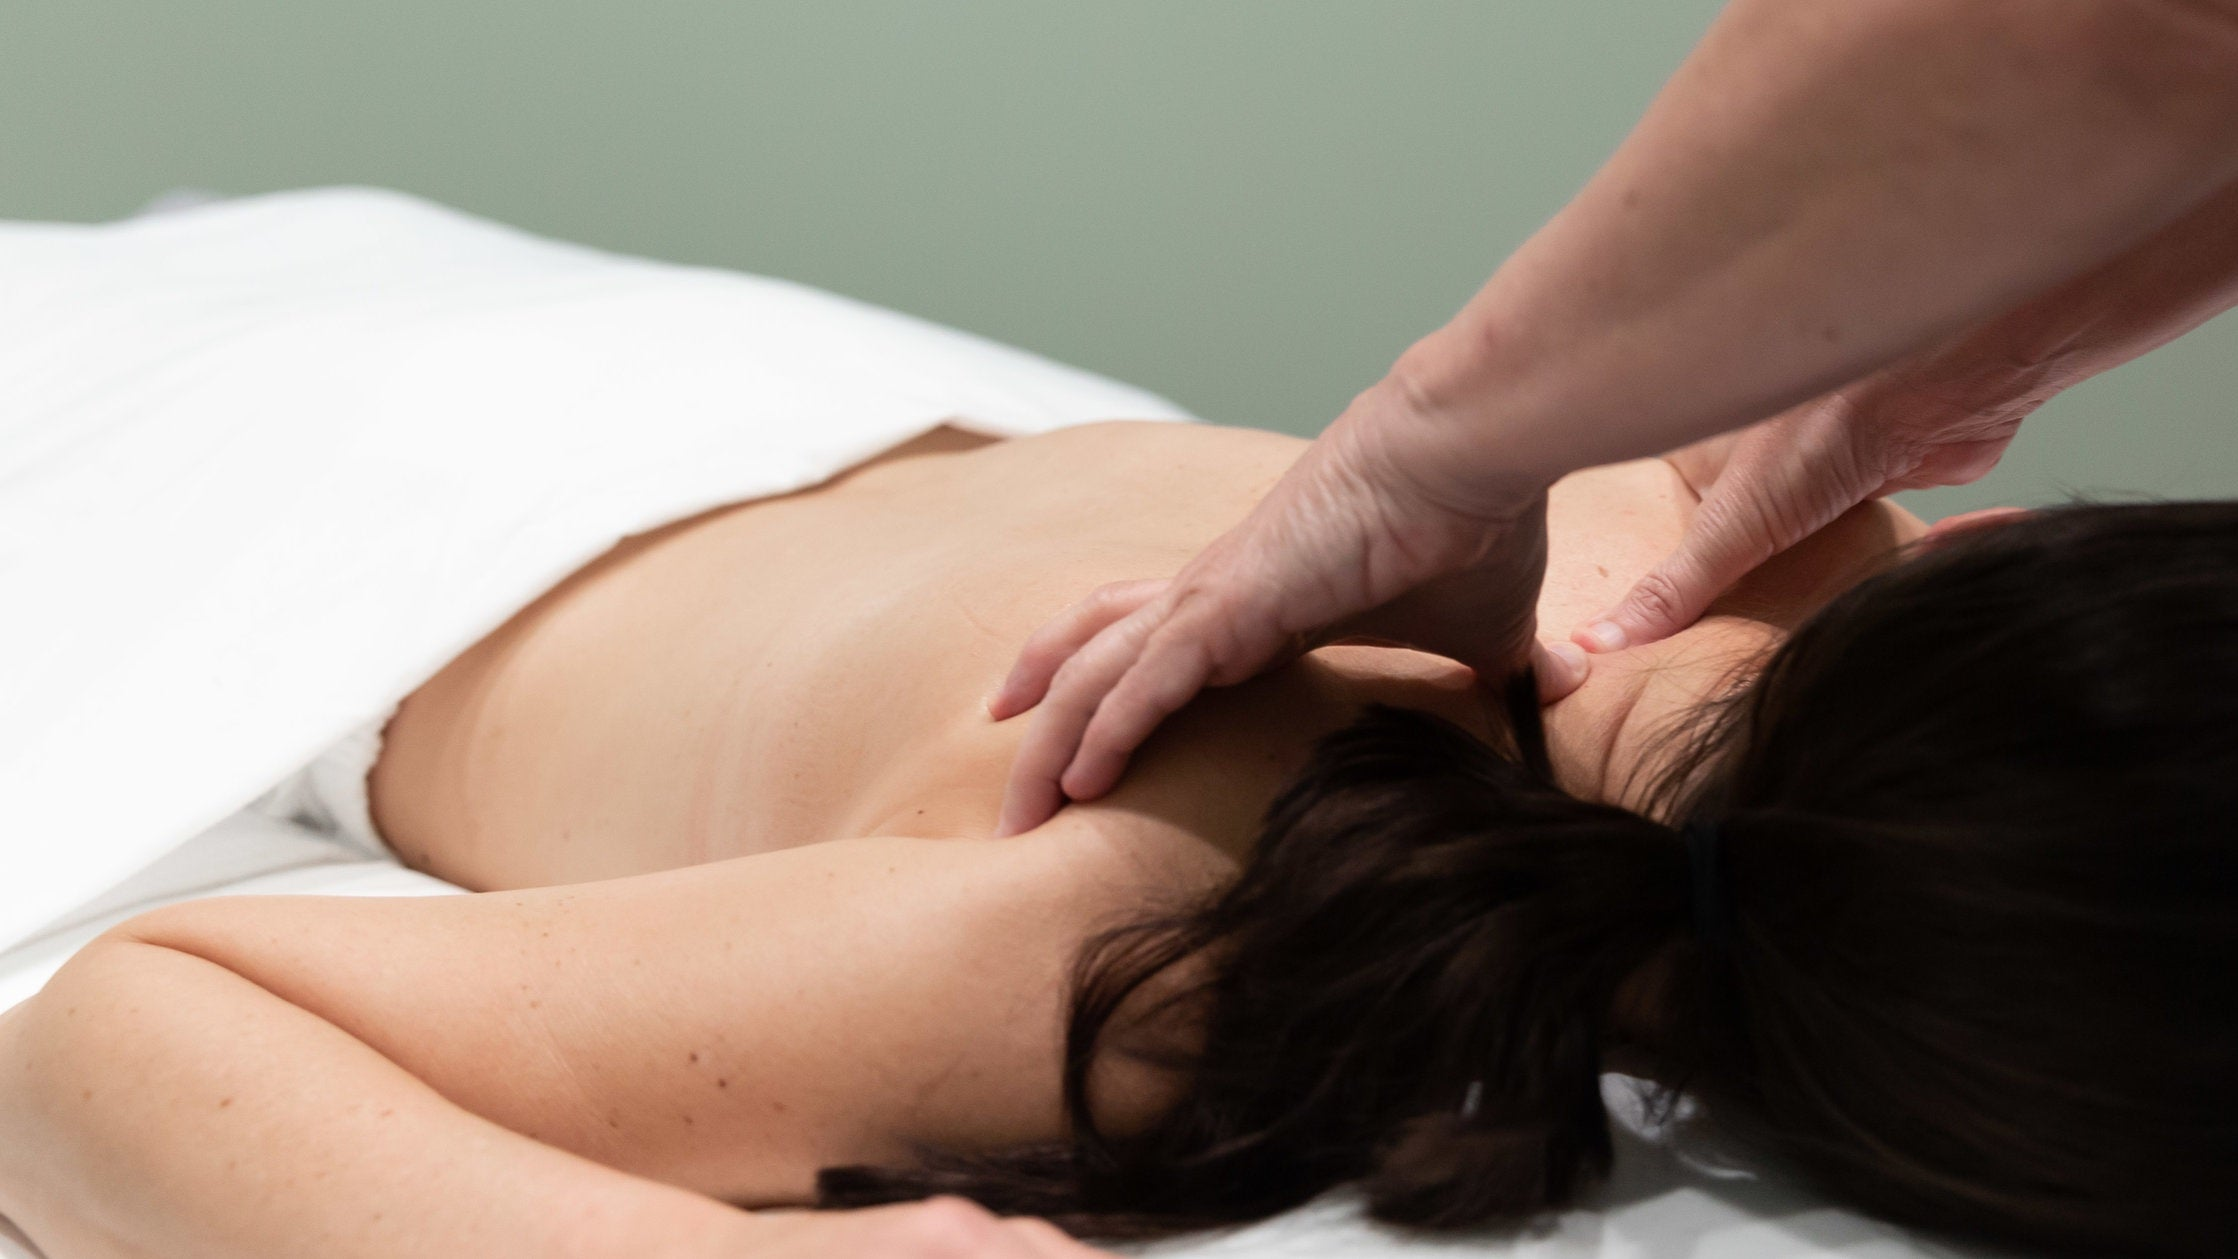 Woman having a massage at Birch Tree Day Spa located in the Ross Bridge neighborhood in Hoover, Alabama